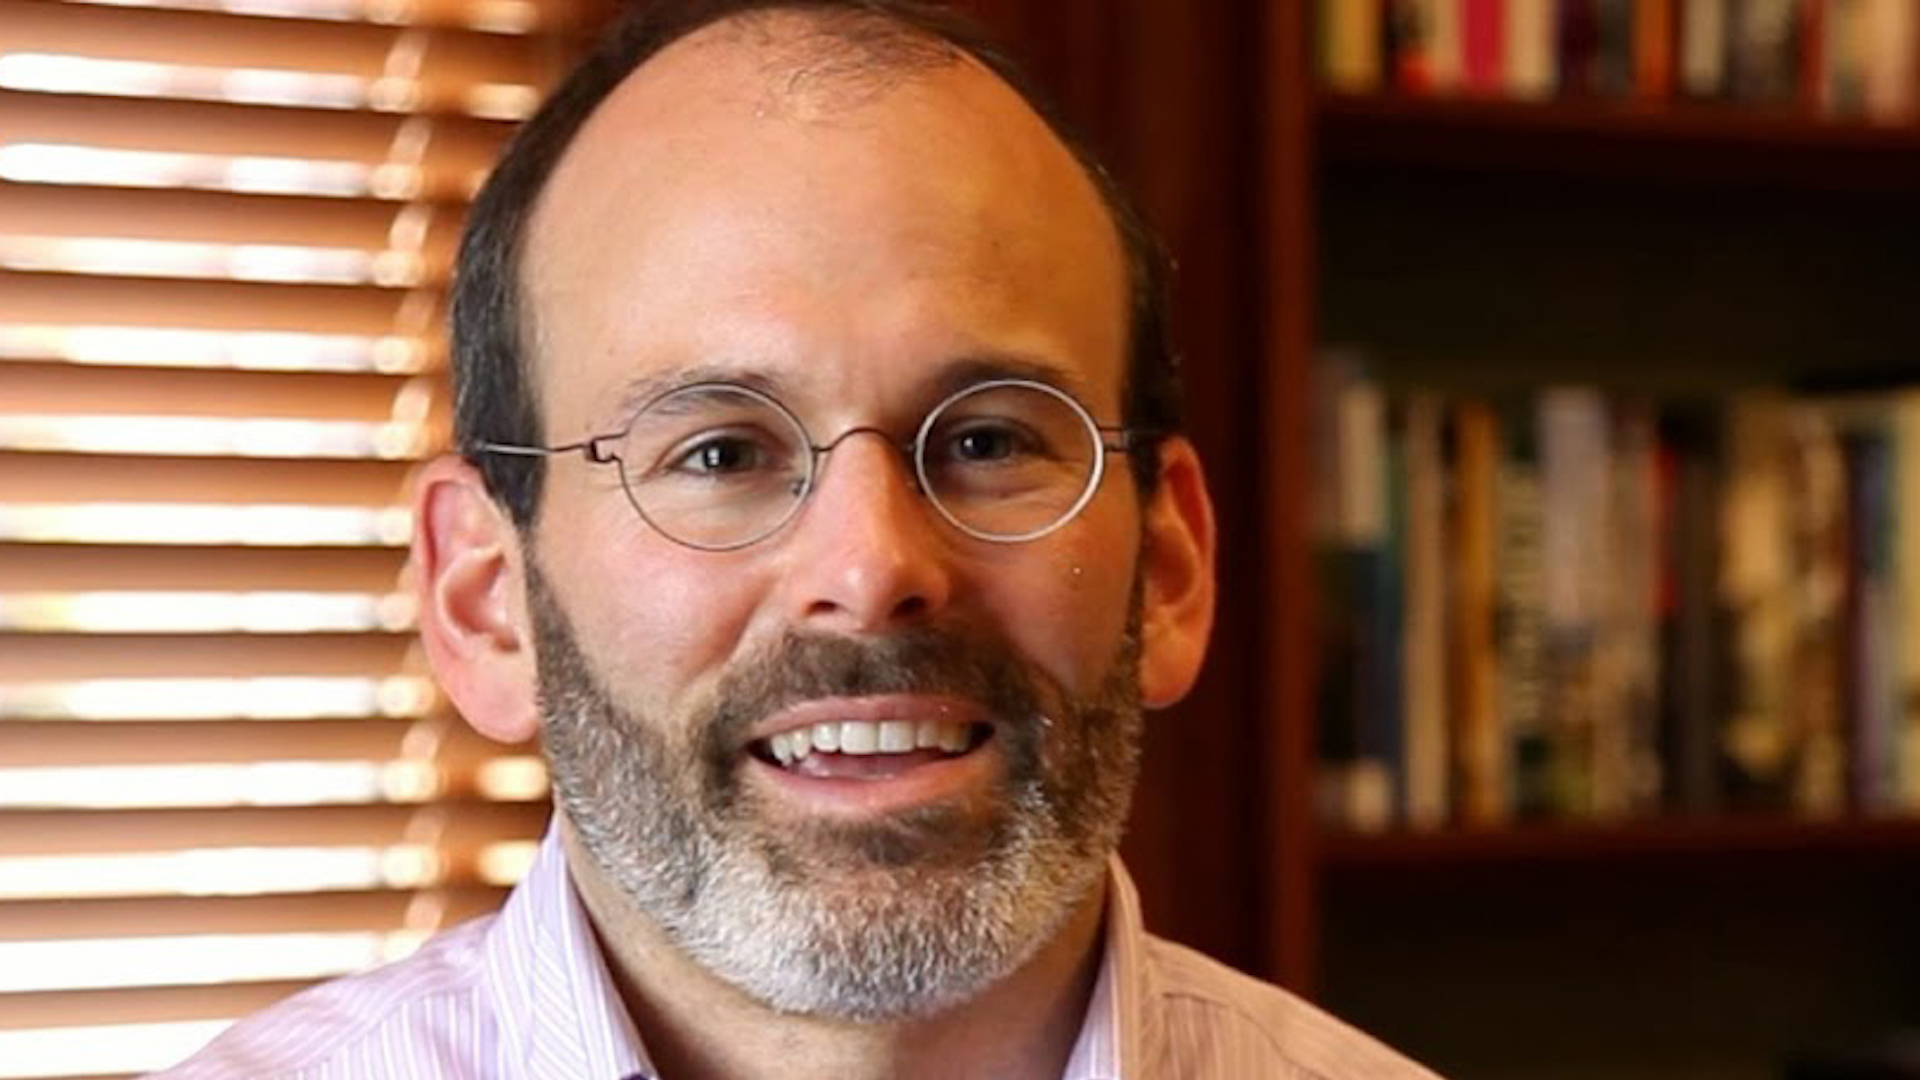 Coronavirus Anxiety Is Real: How To Stay Mentally Strong During The COVID-19 Pandemic - Dr. Judson Brewer